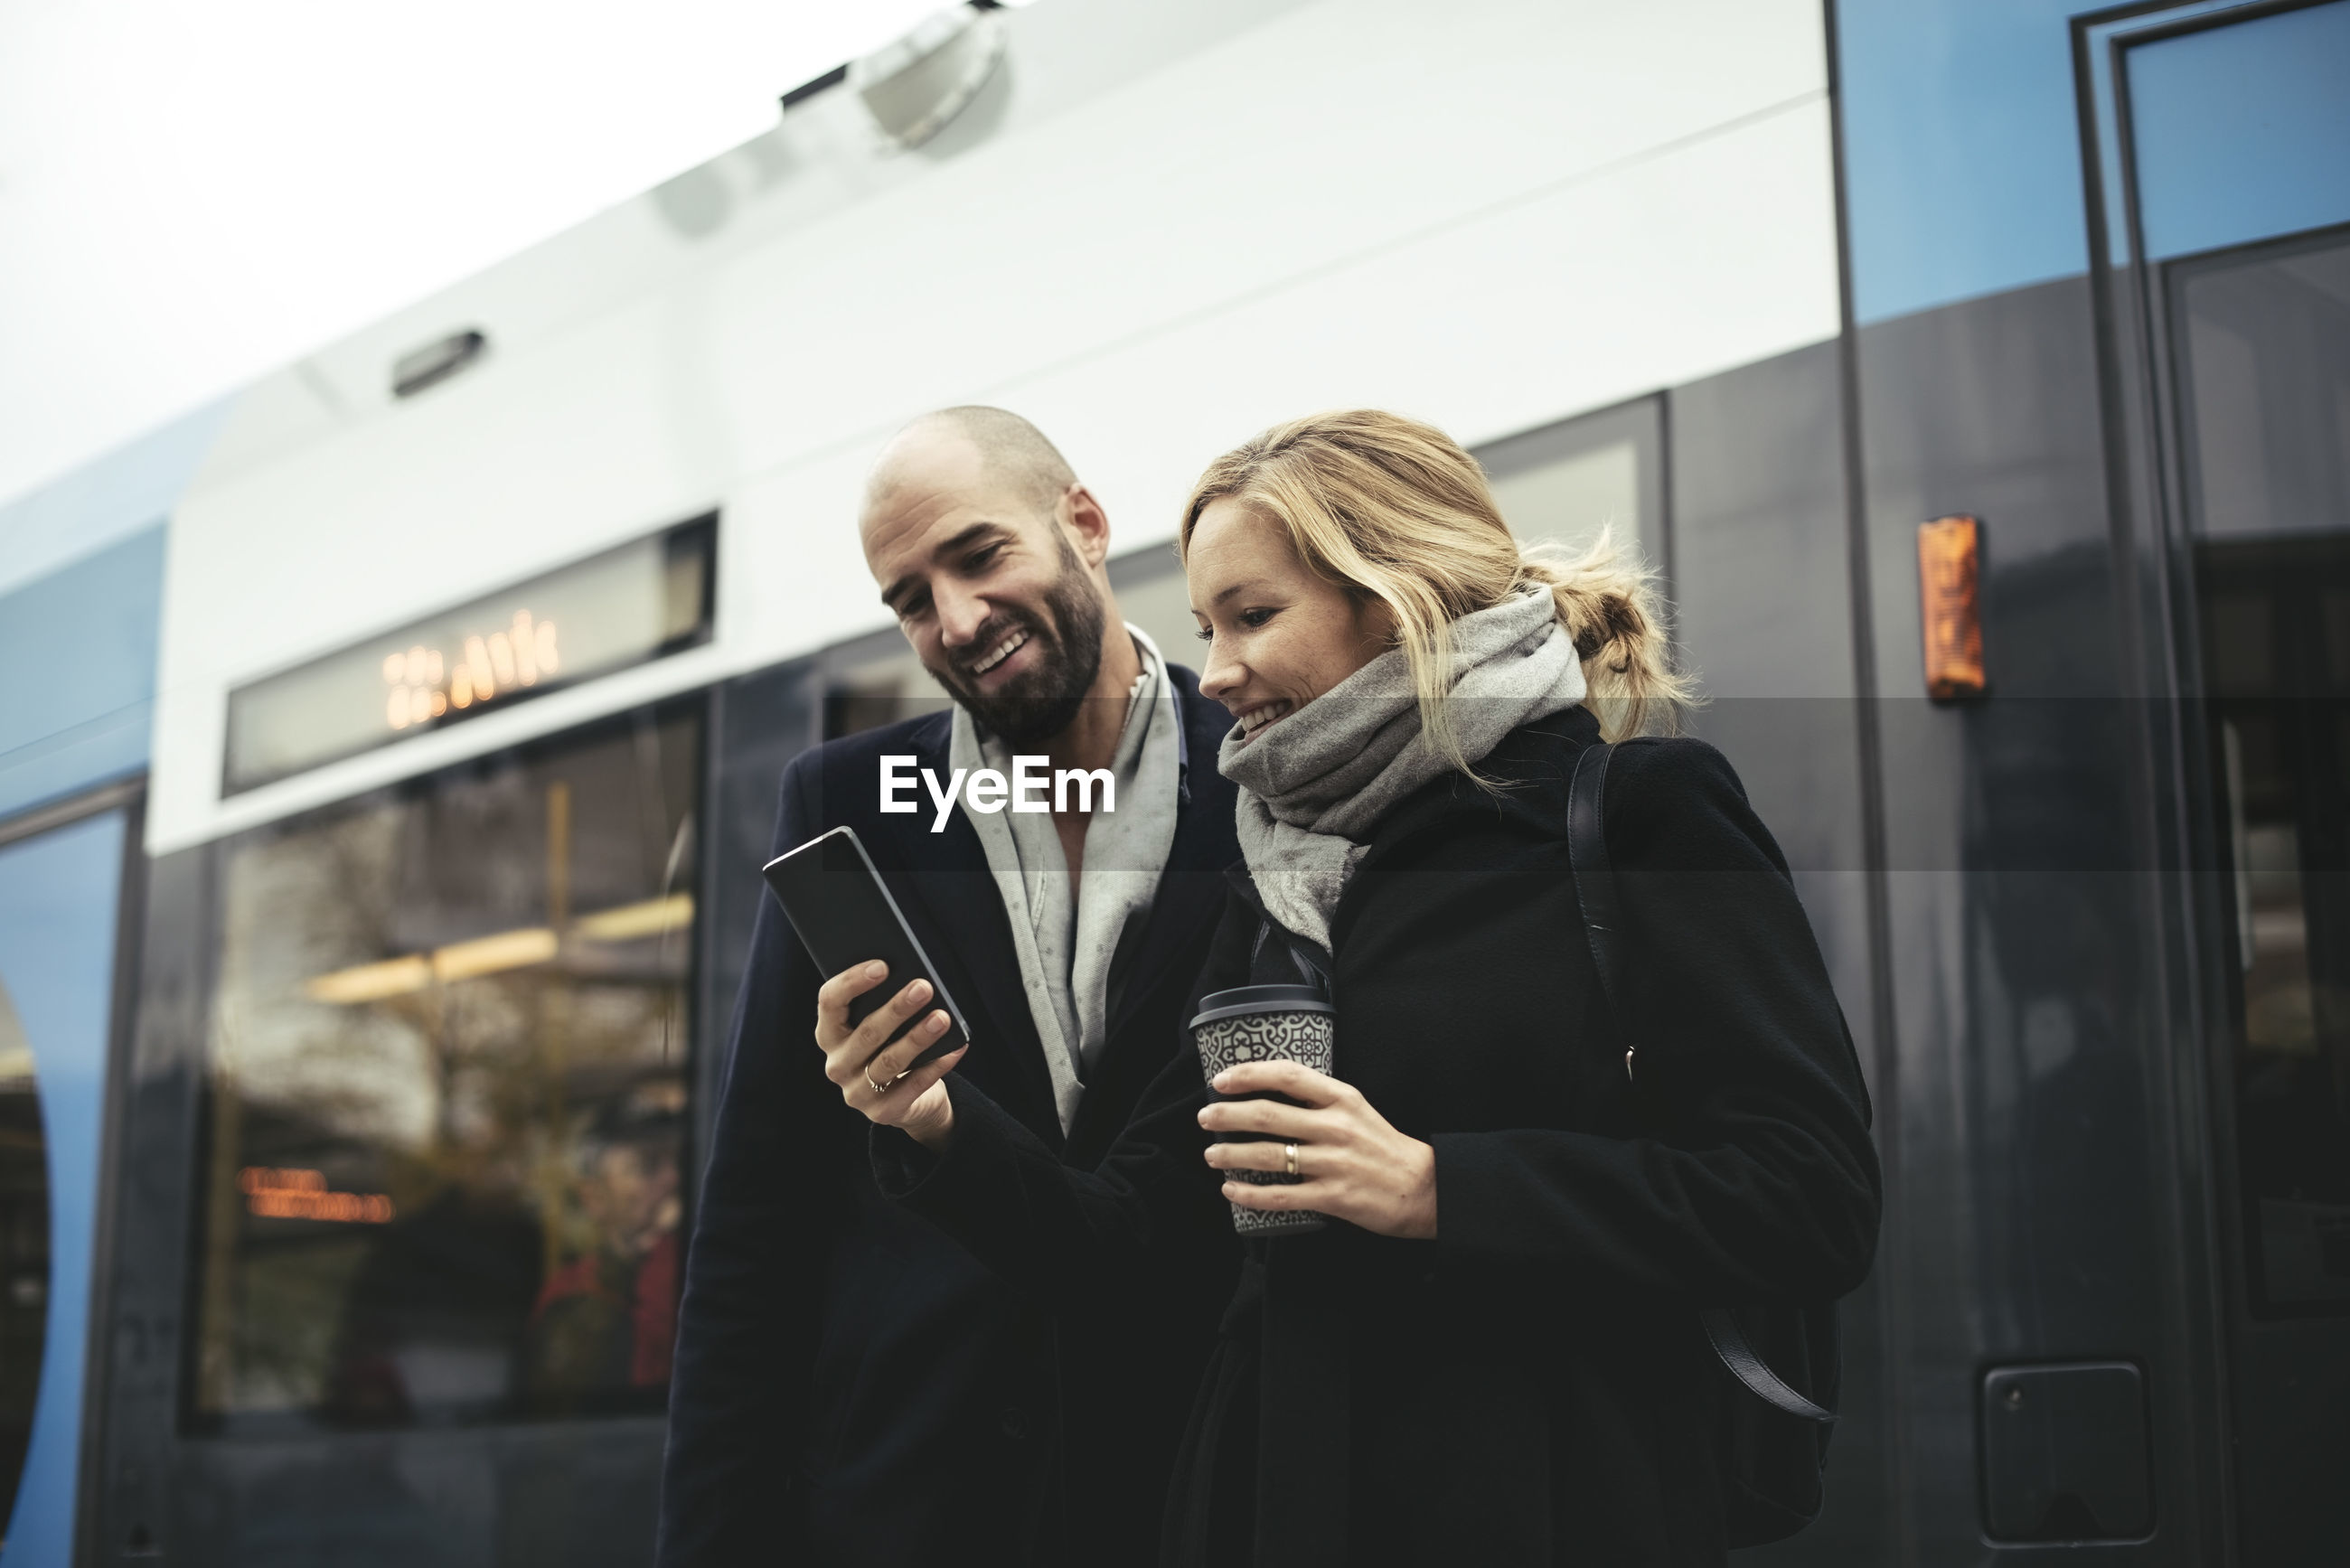 Smiling business people using mobile phone while standing against tram